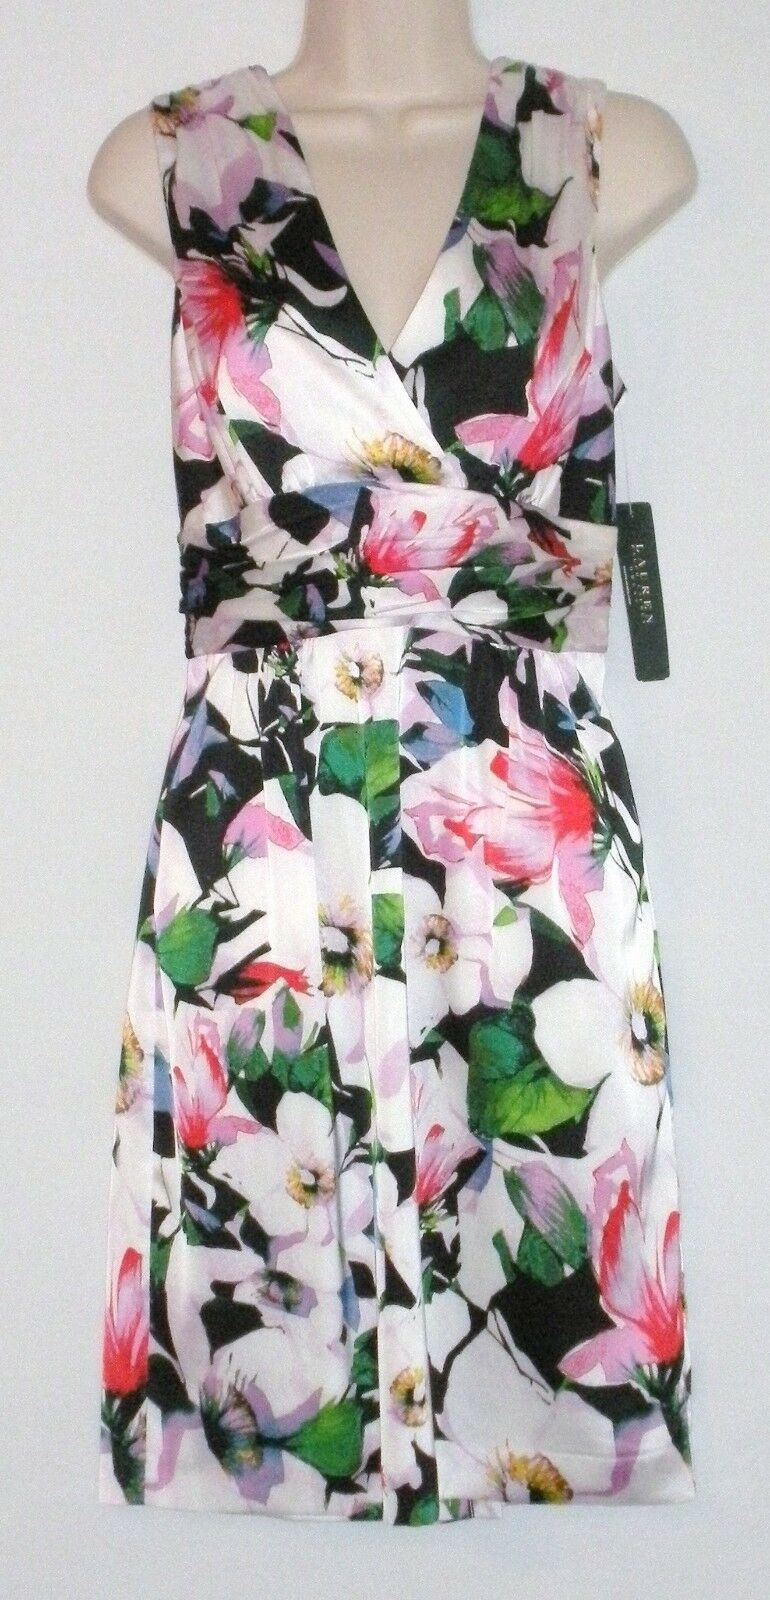 NEW with TAG  LAUREN RALPH LAUREN Floral Dress Größe 8 - MSRP